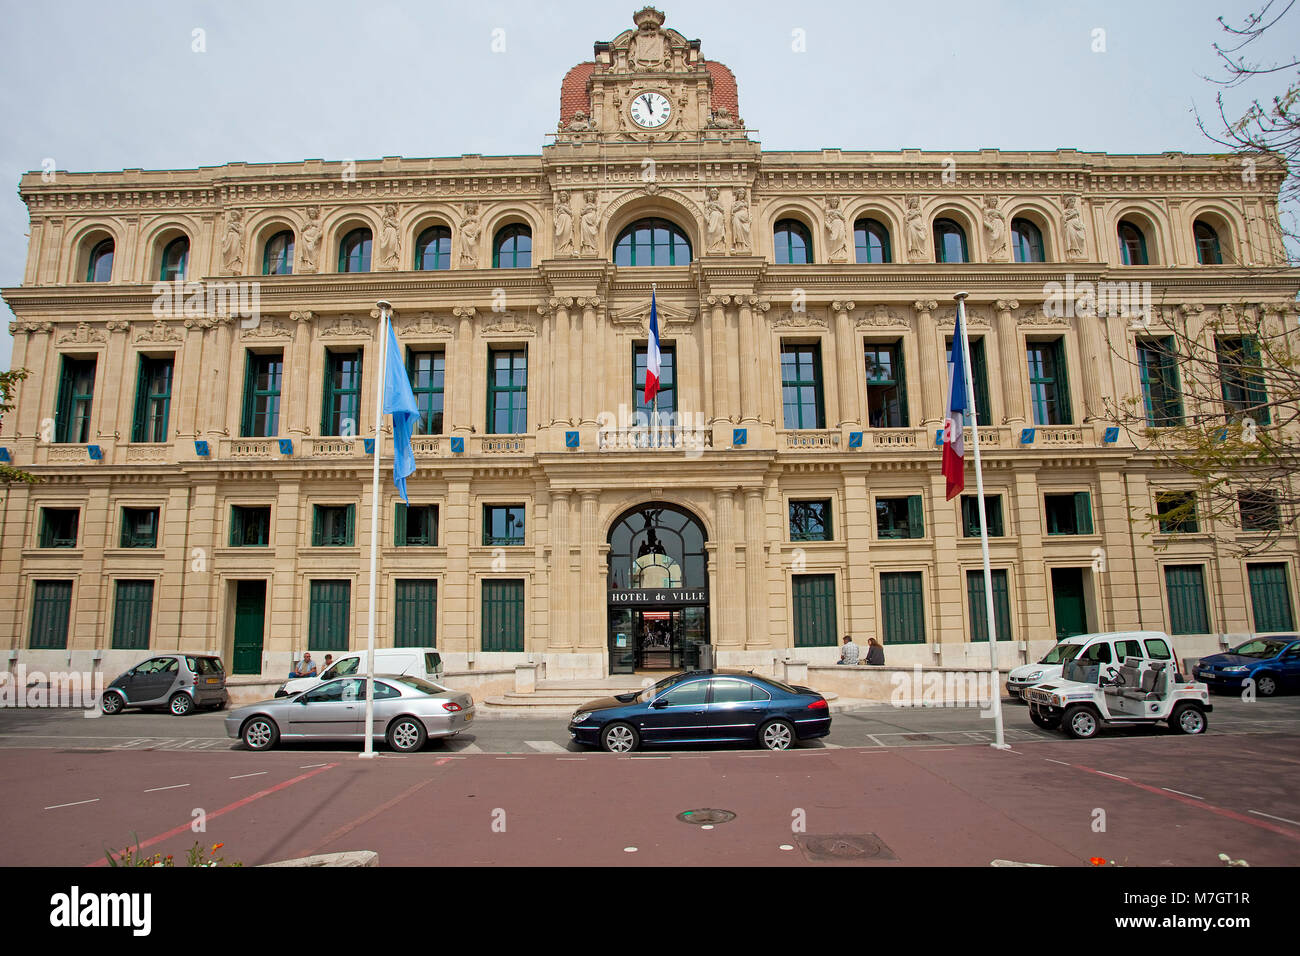 Hotel de Ville (town hall), cultural builing with neoclassic style at old town Le Suquet, Cannes, french riviera, - Stock Image